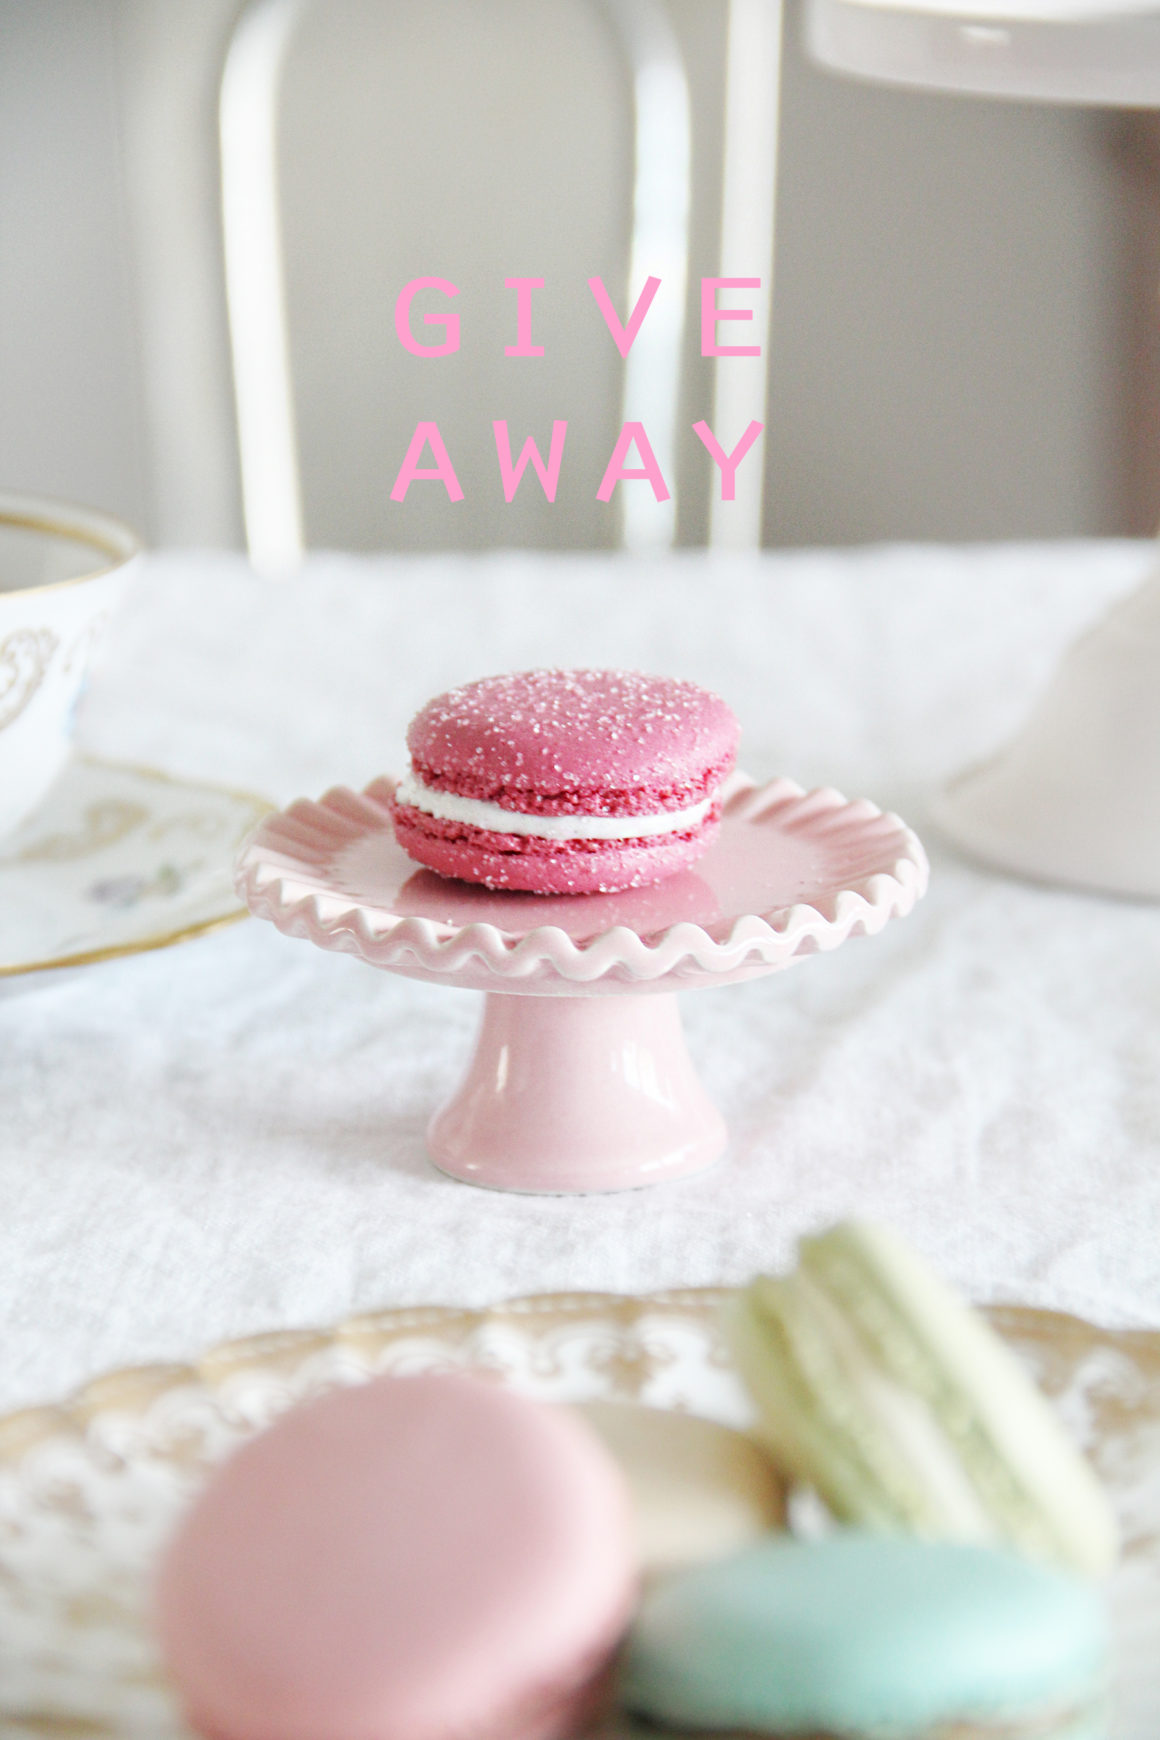 Roses, Macarons, Bling… and a Give Away